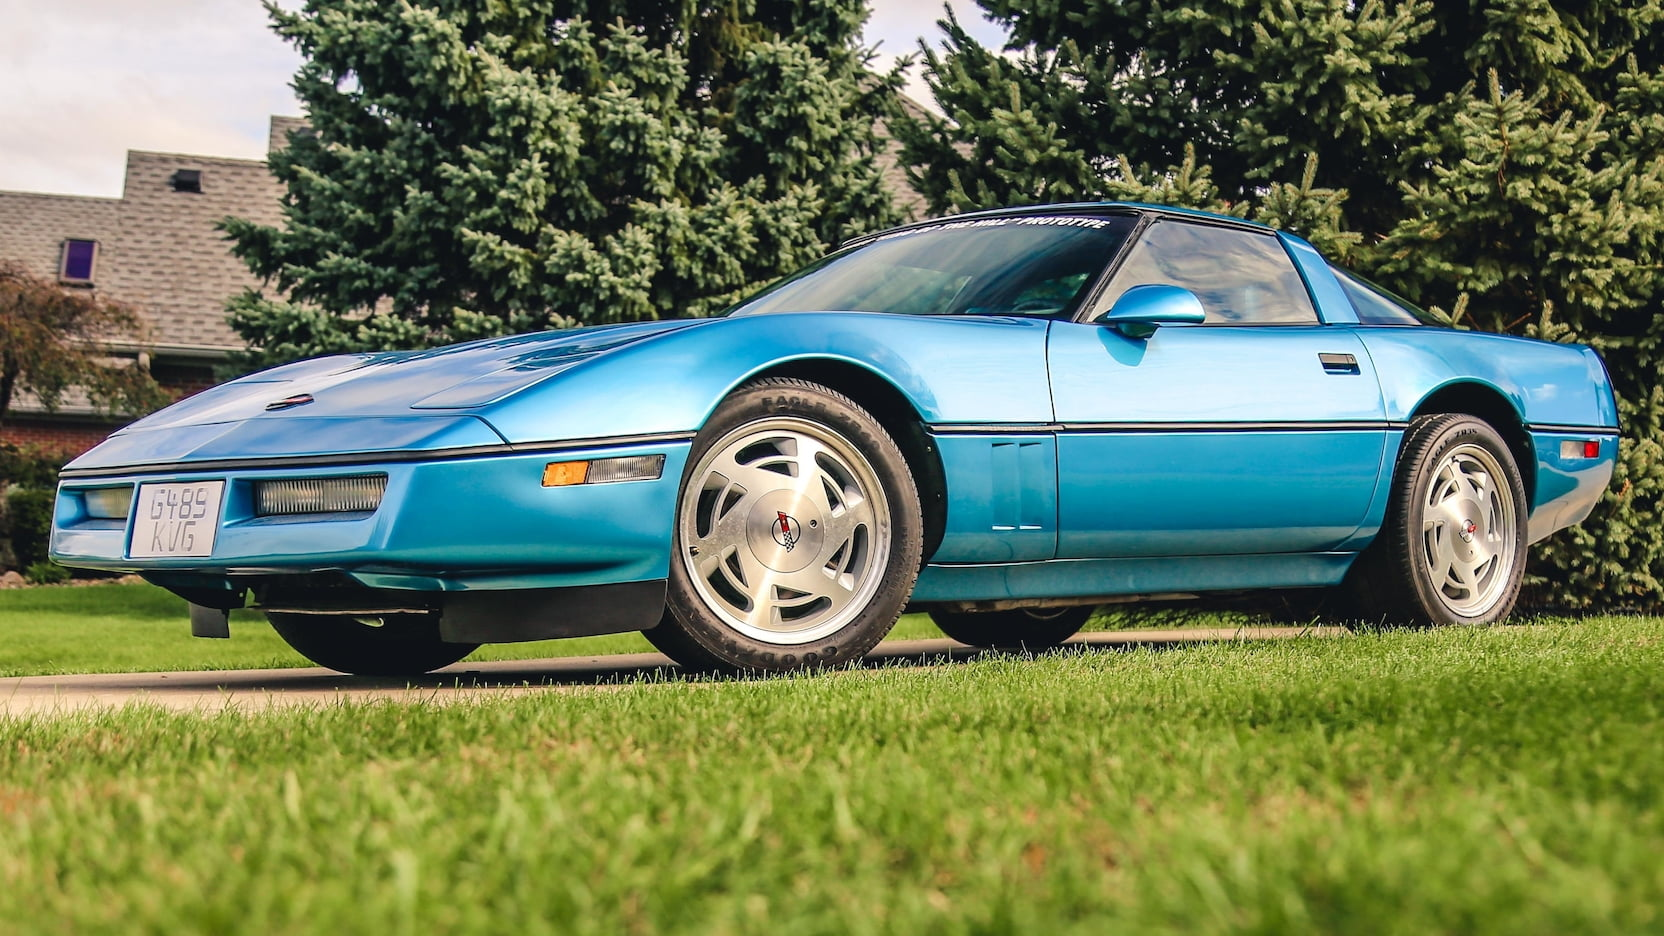 1988 Corvette ZR-1 Prototype - EX5023